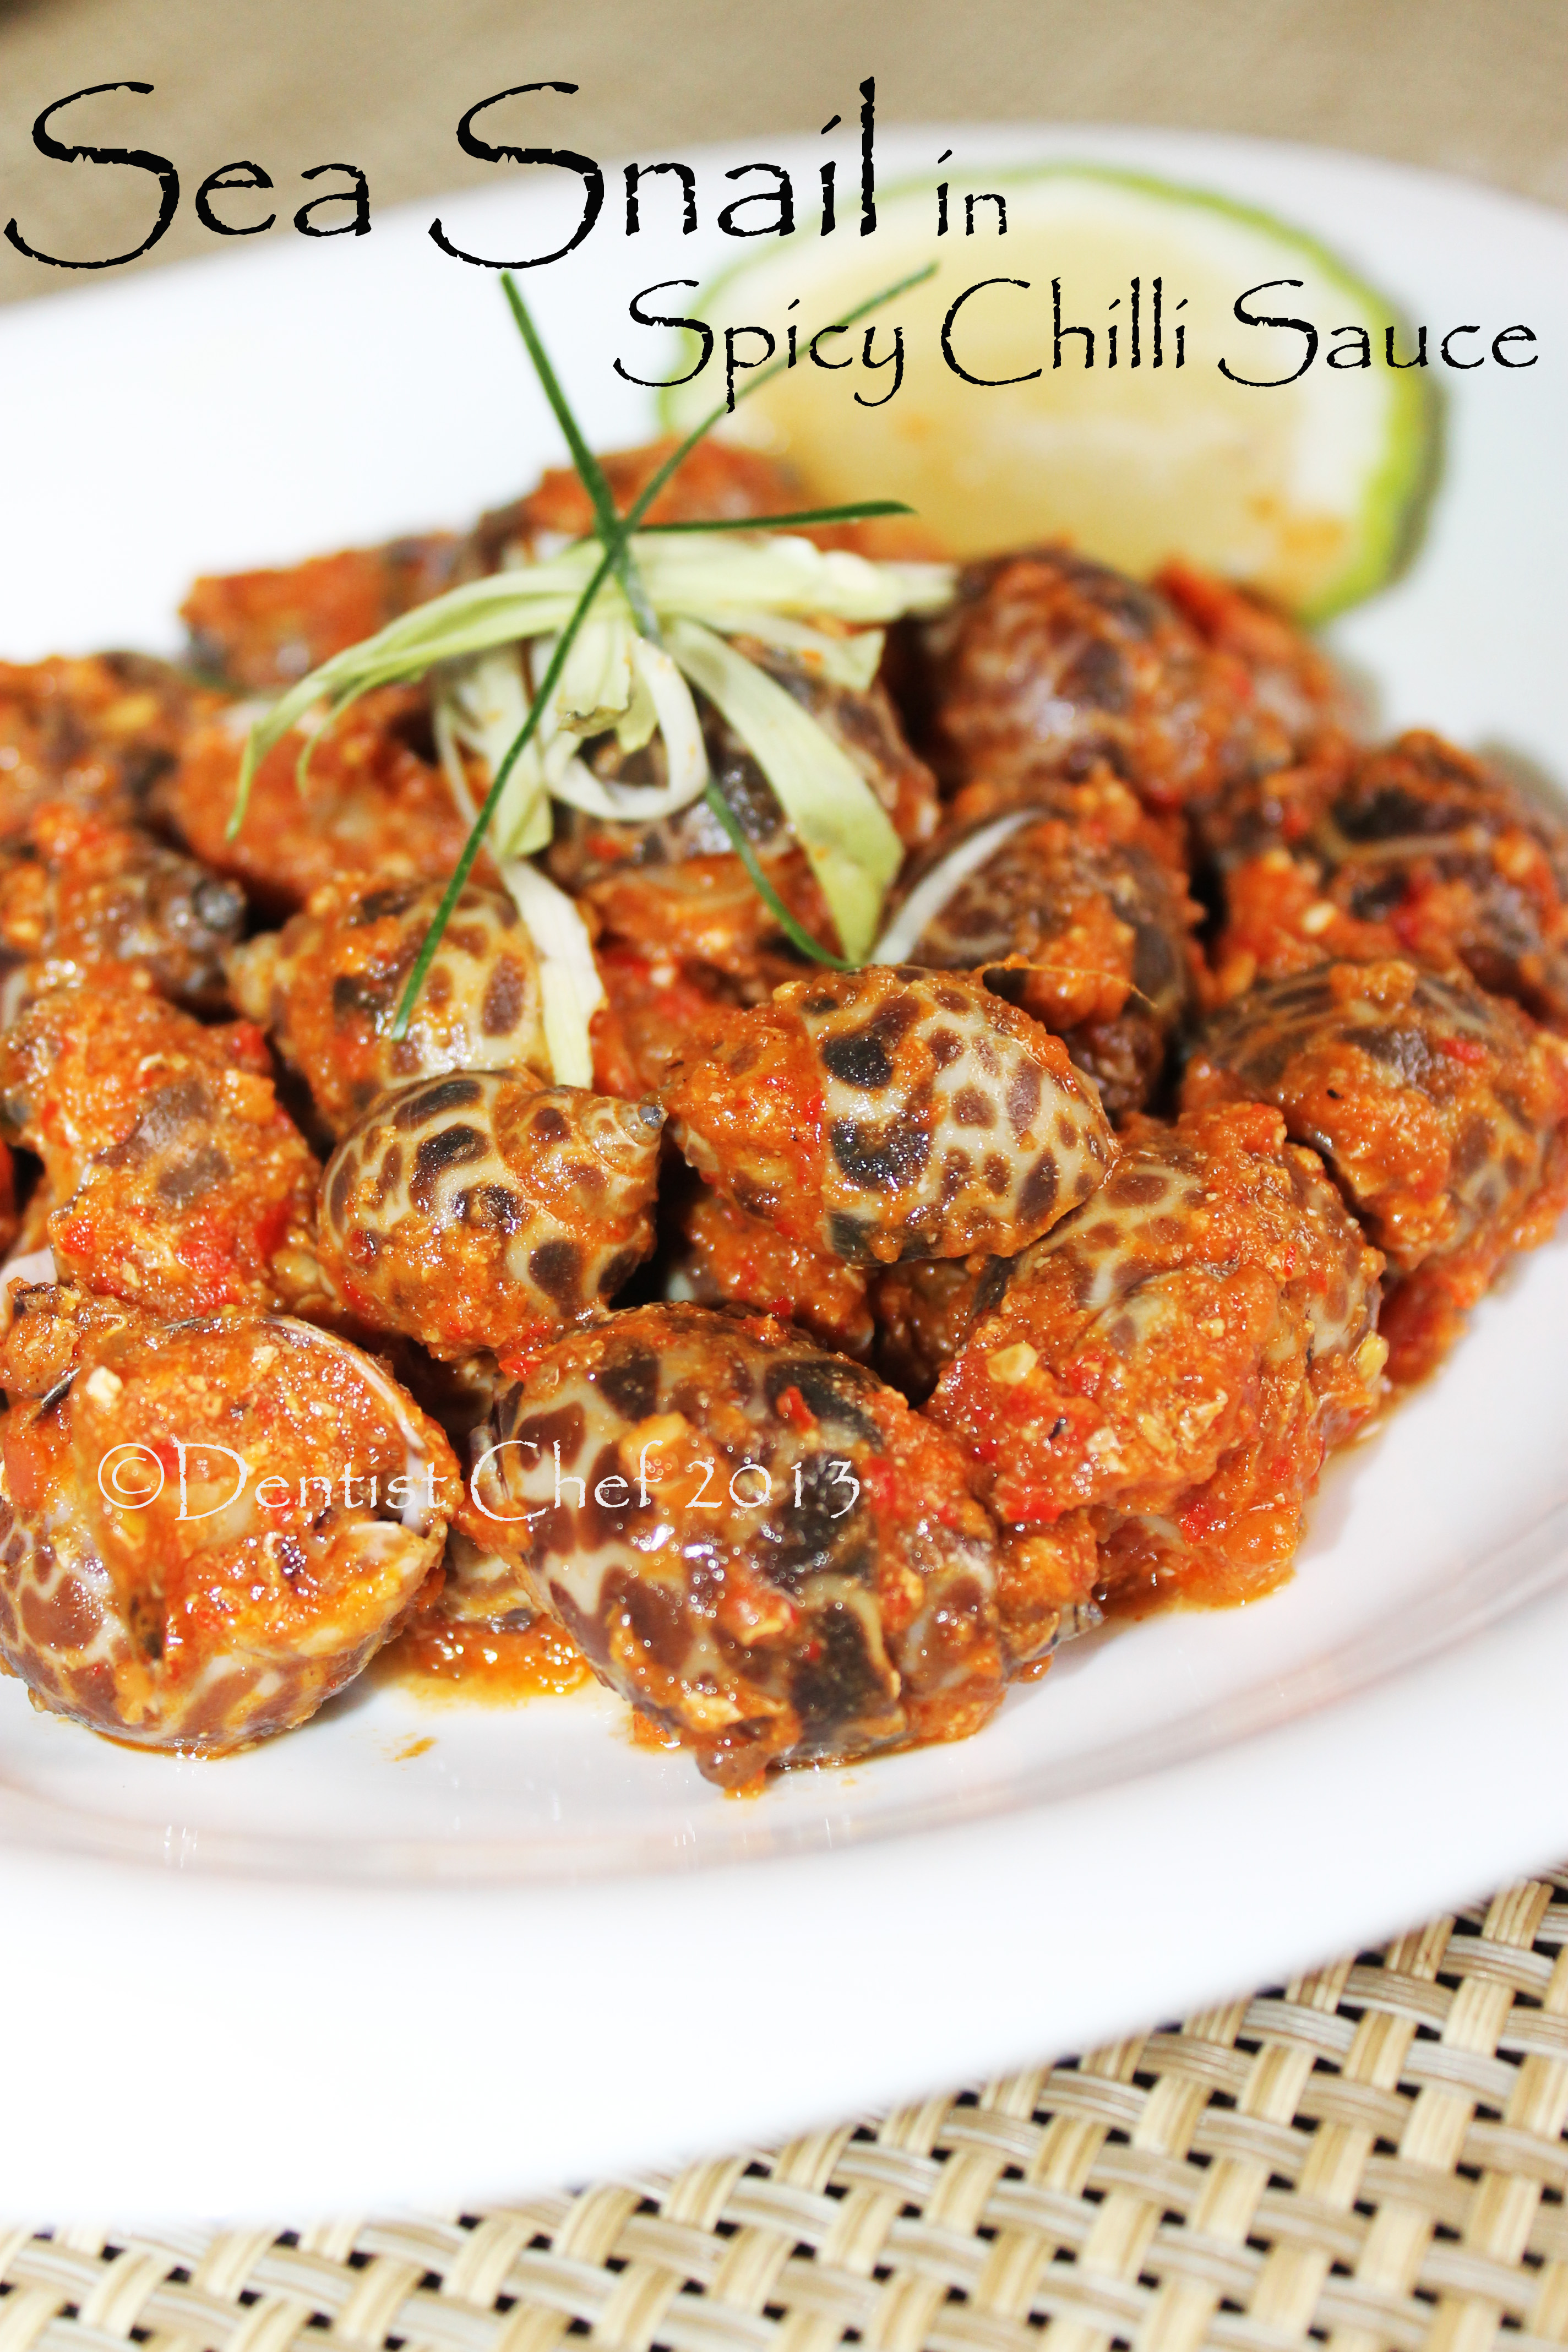 Sea snail in spicy chili sauce recipe resep kerang macan saus cabe sea snail spicy chilli sauce recipe kerang macan cili api pedas forumfinder Gallery